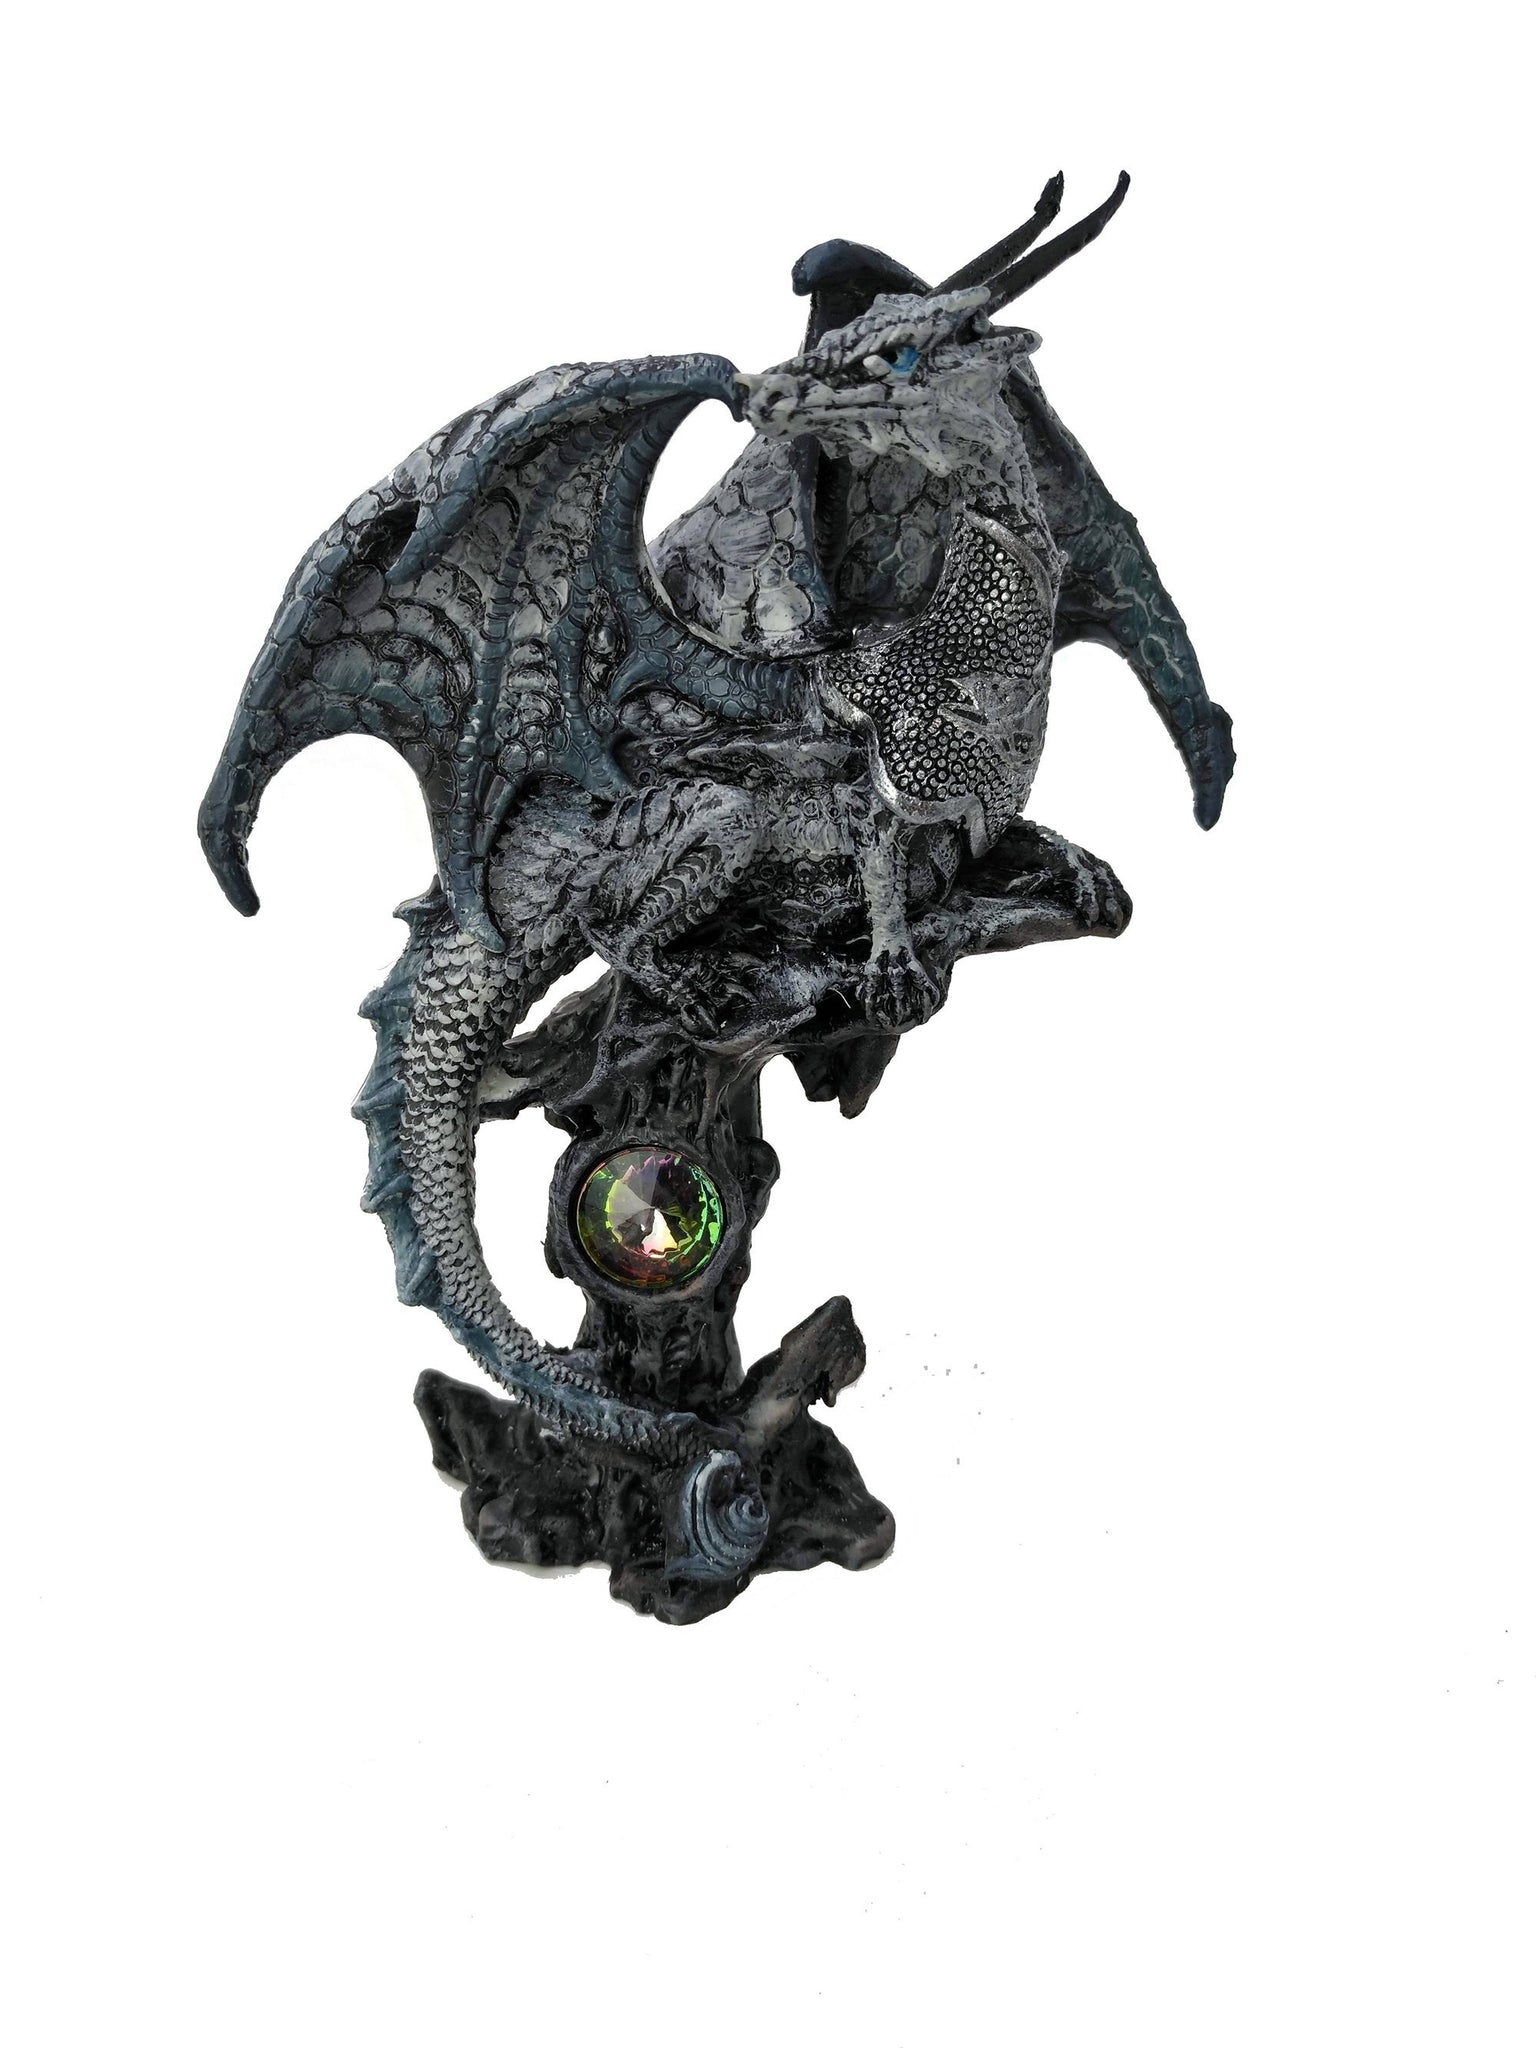 Black Dragon Protecting Jewel On Perch Statue